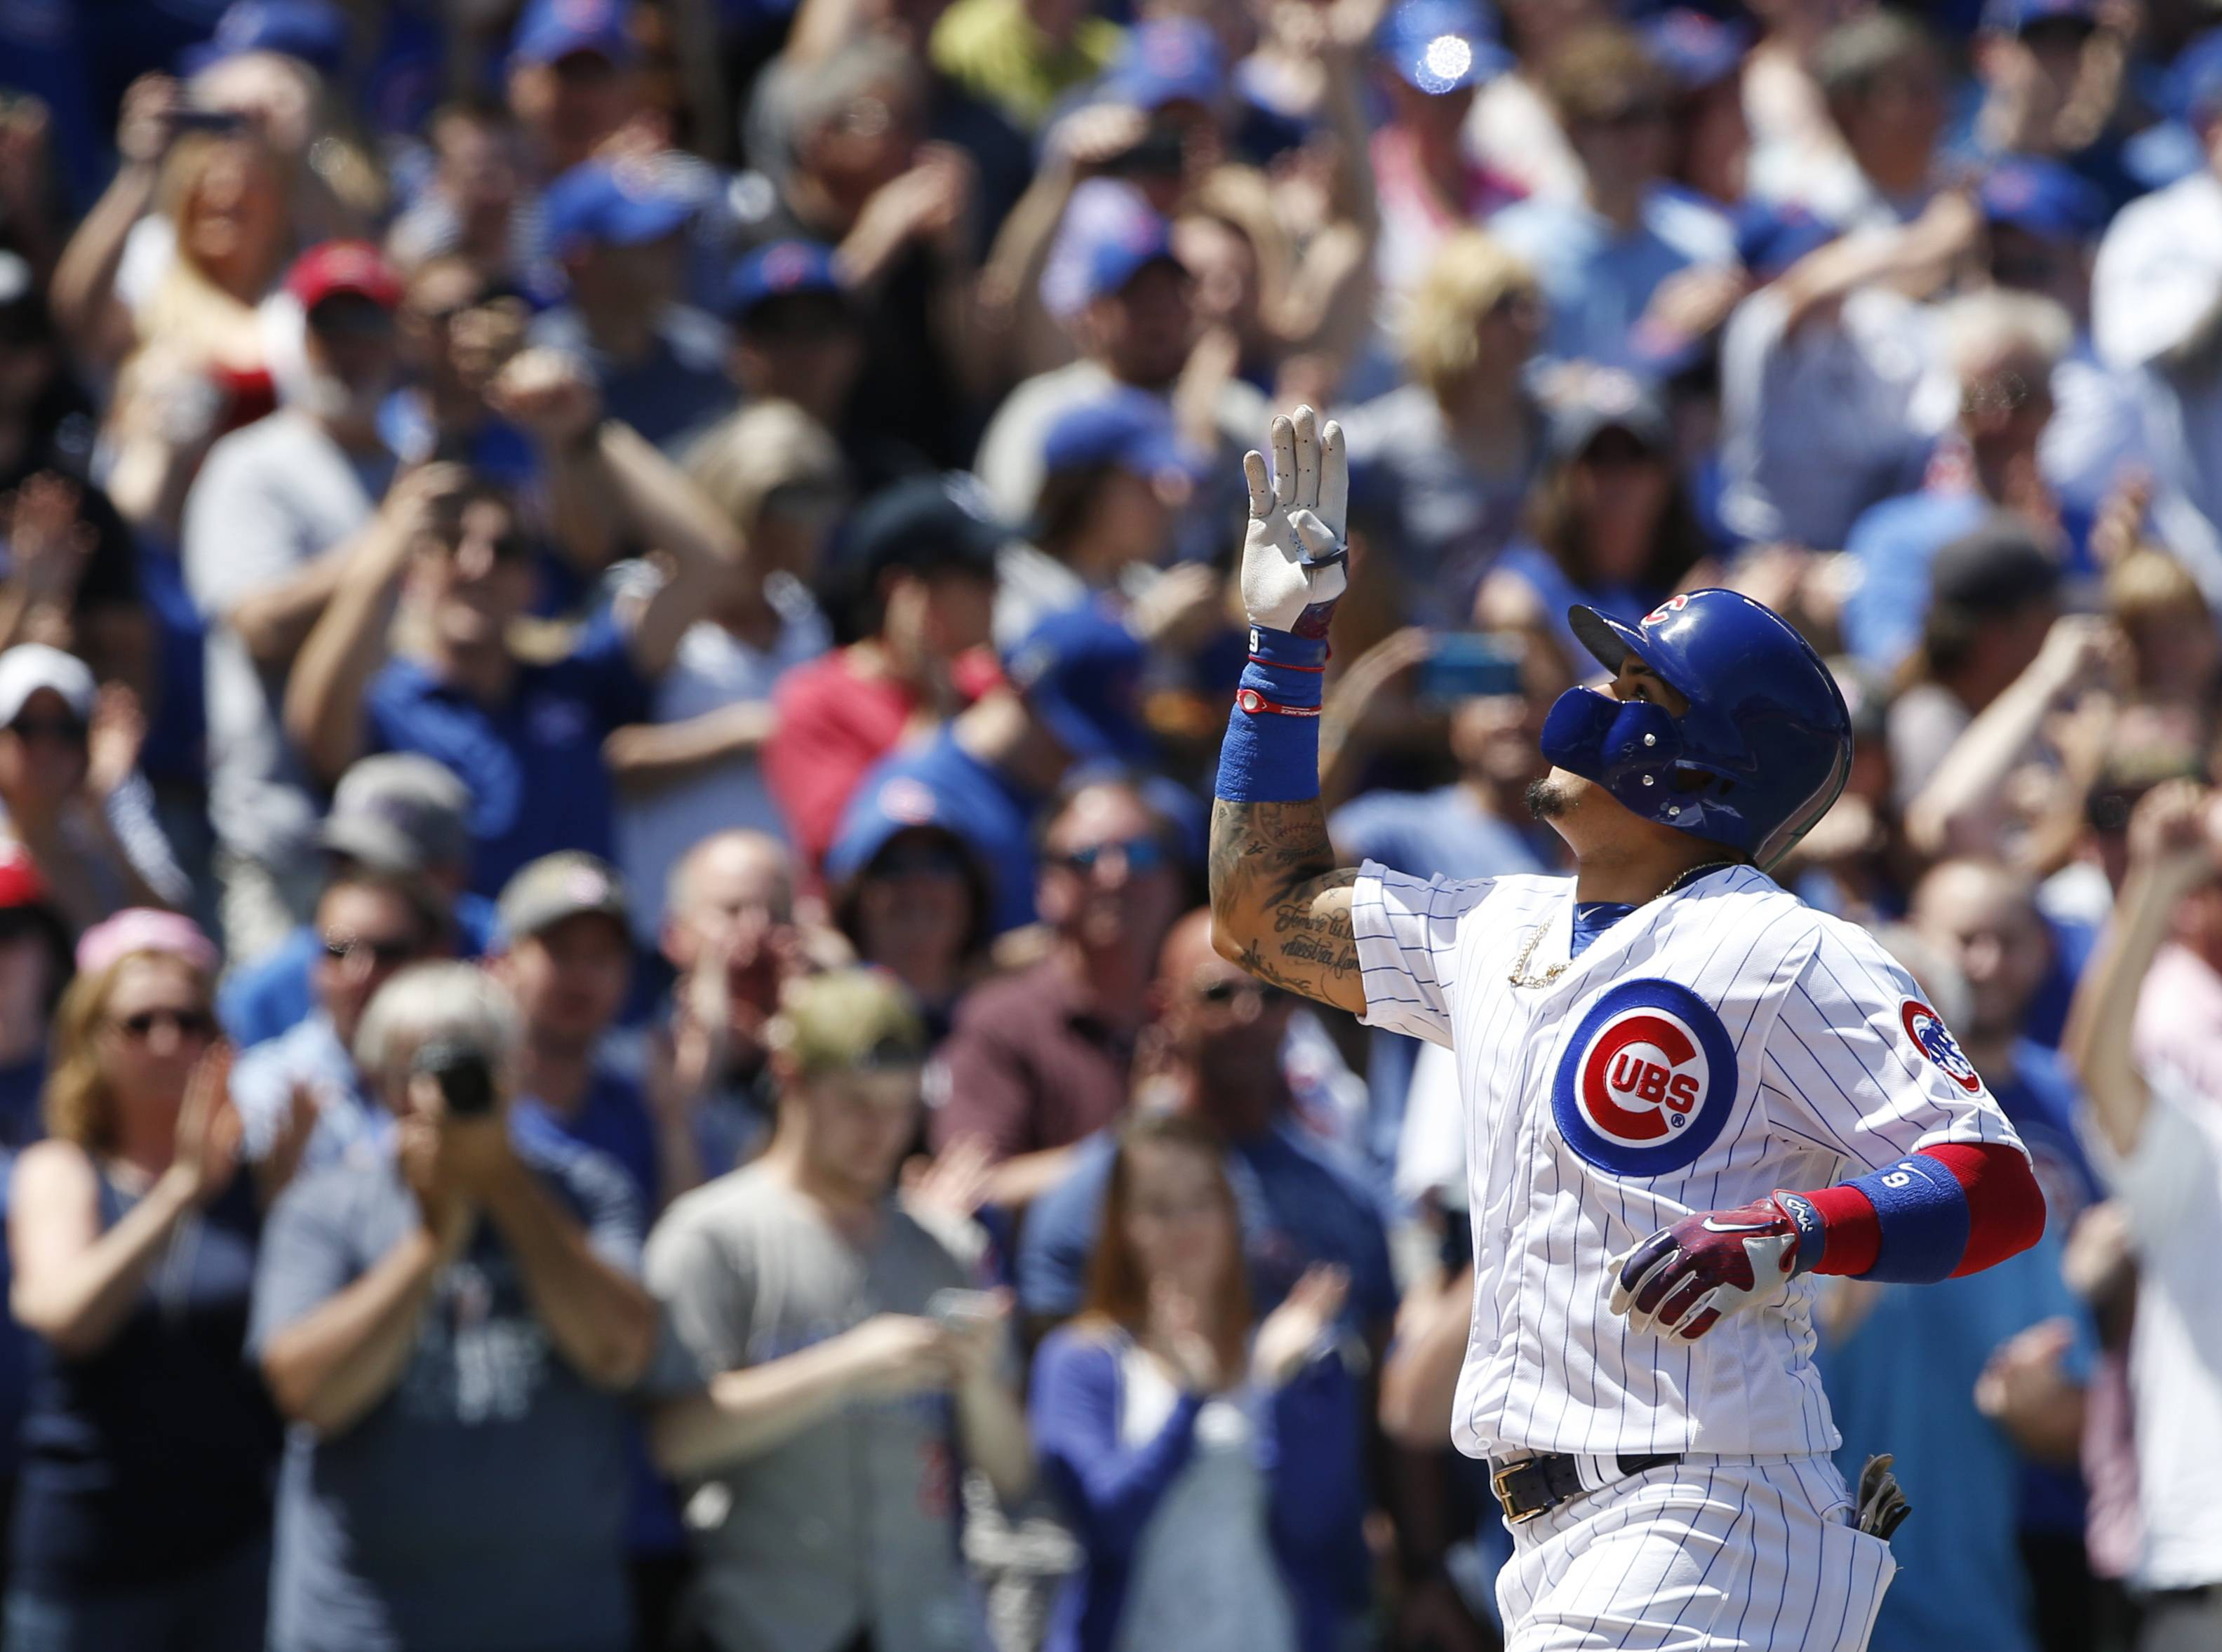 Chicago Cubs' Javier Baez celebrates after hitting a grand slam during the first inning of a baseball game against the Cincinnati Reds in Chicago, Thursday, May 18, 2017.